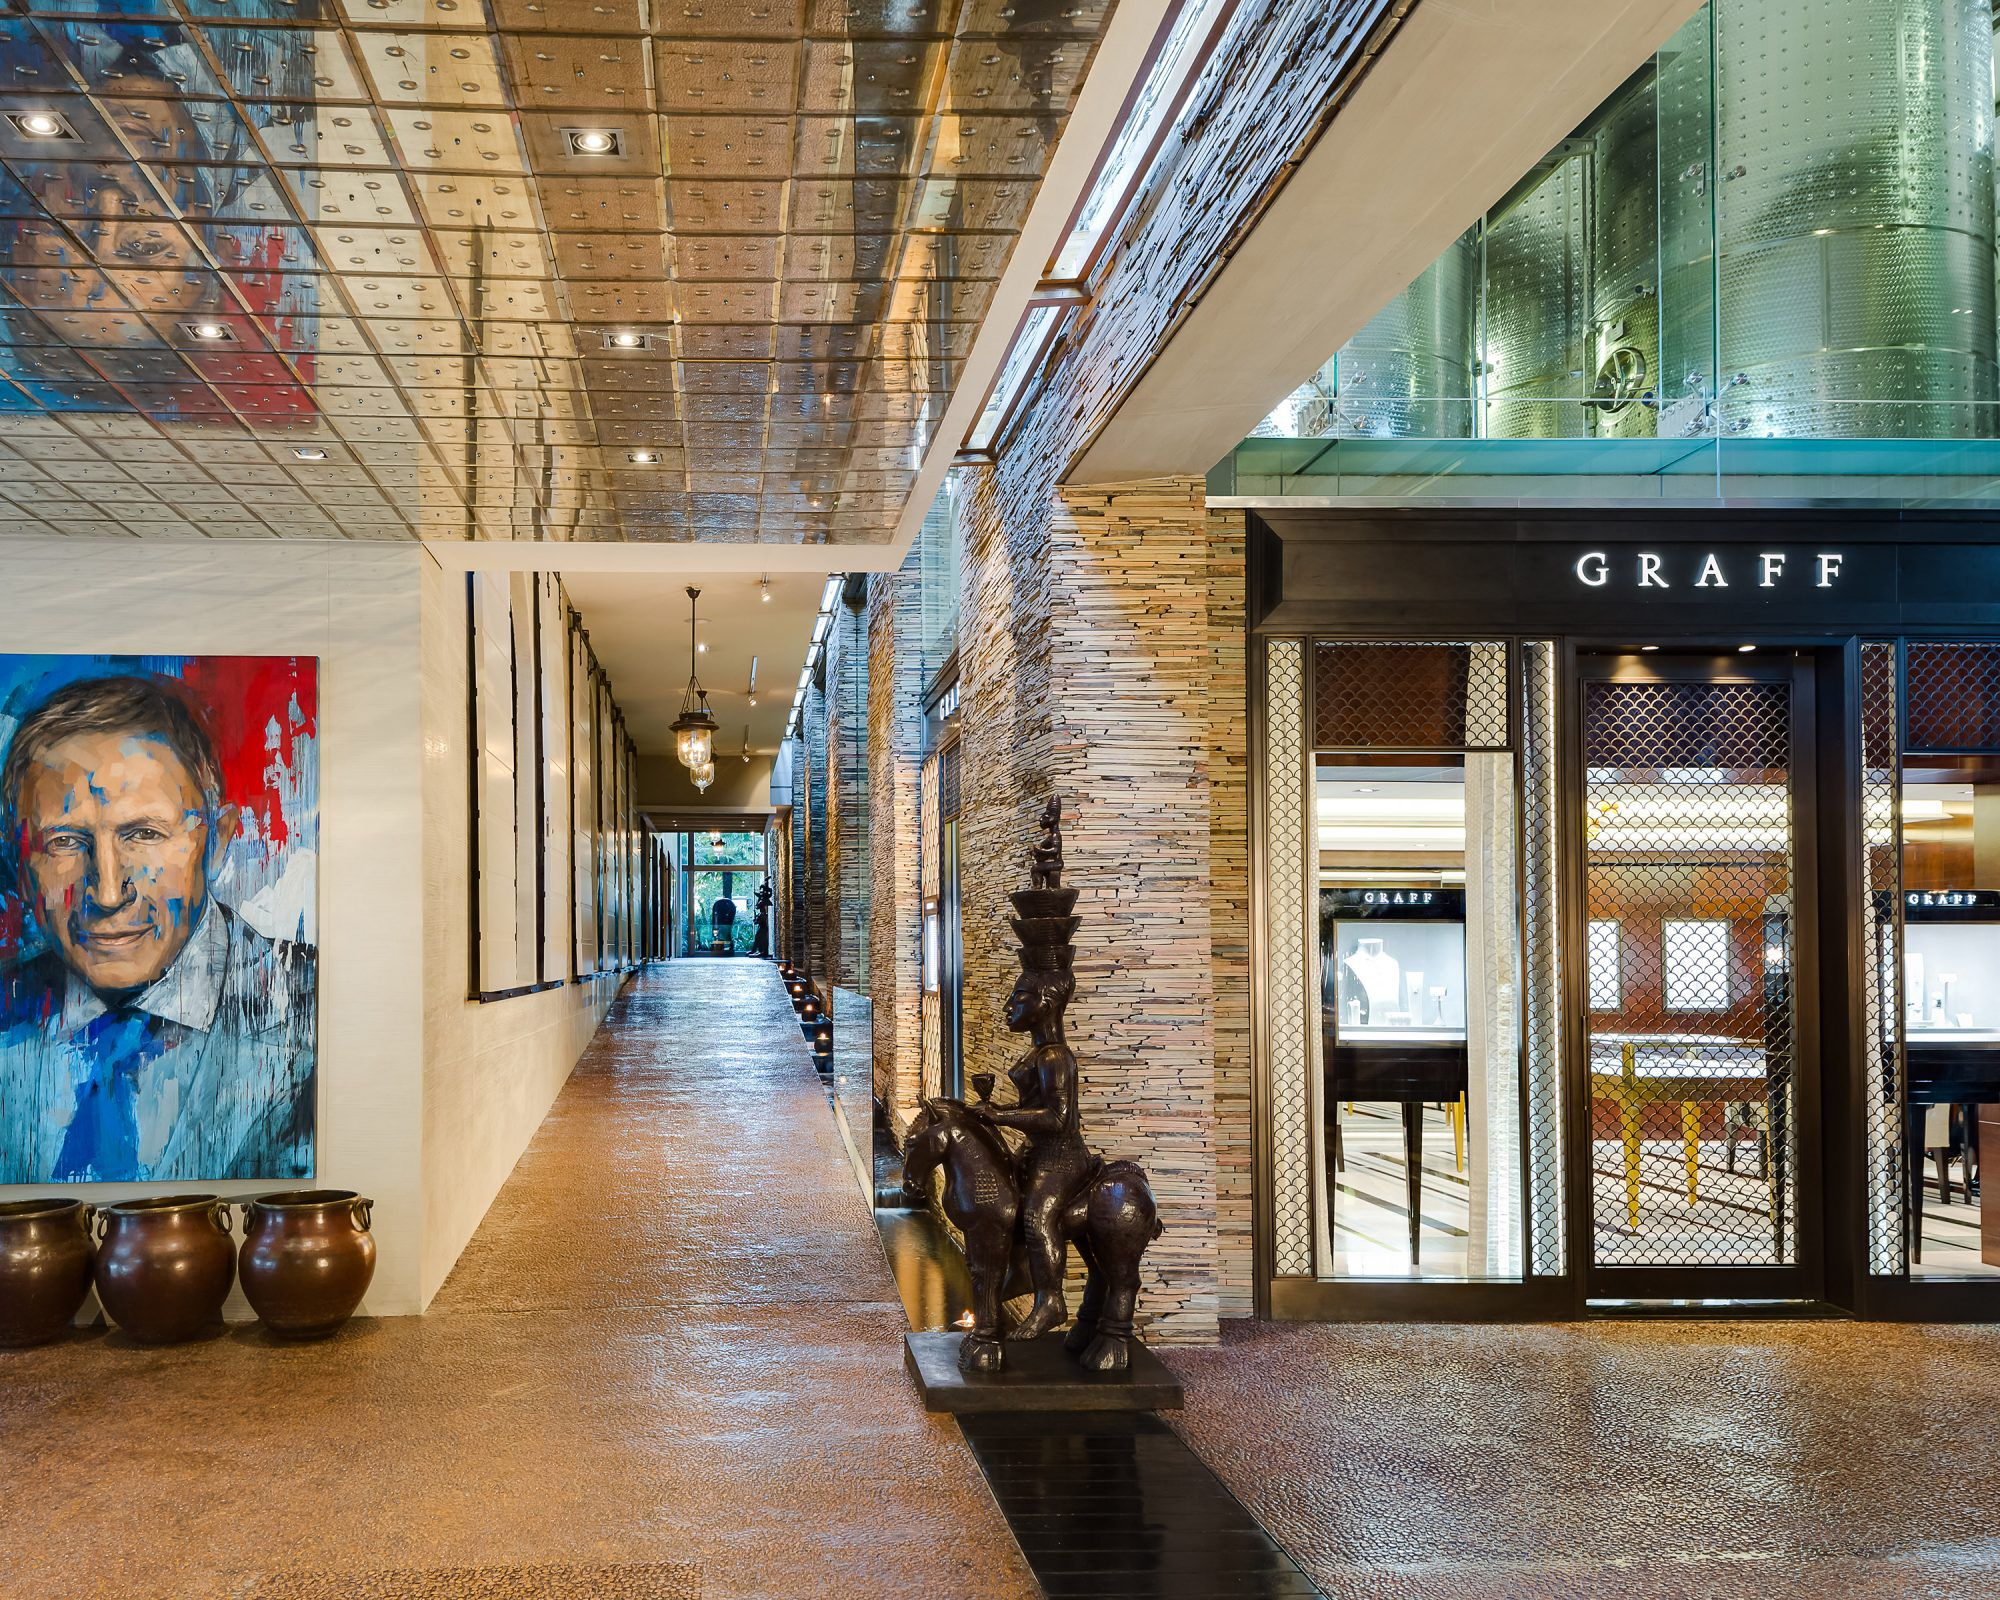 Exterior of the Graff jewellery boutique in the Delaire Graff Estate in South Africa